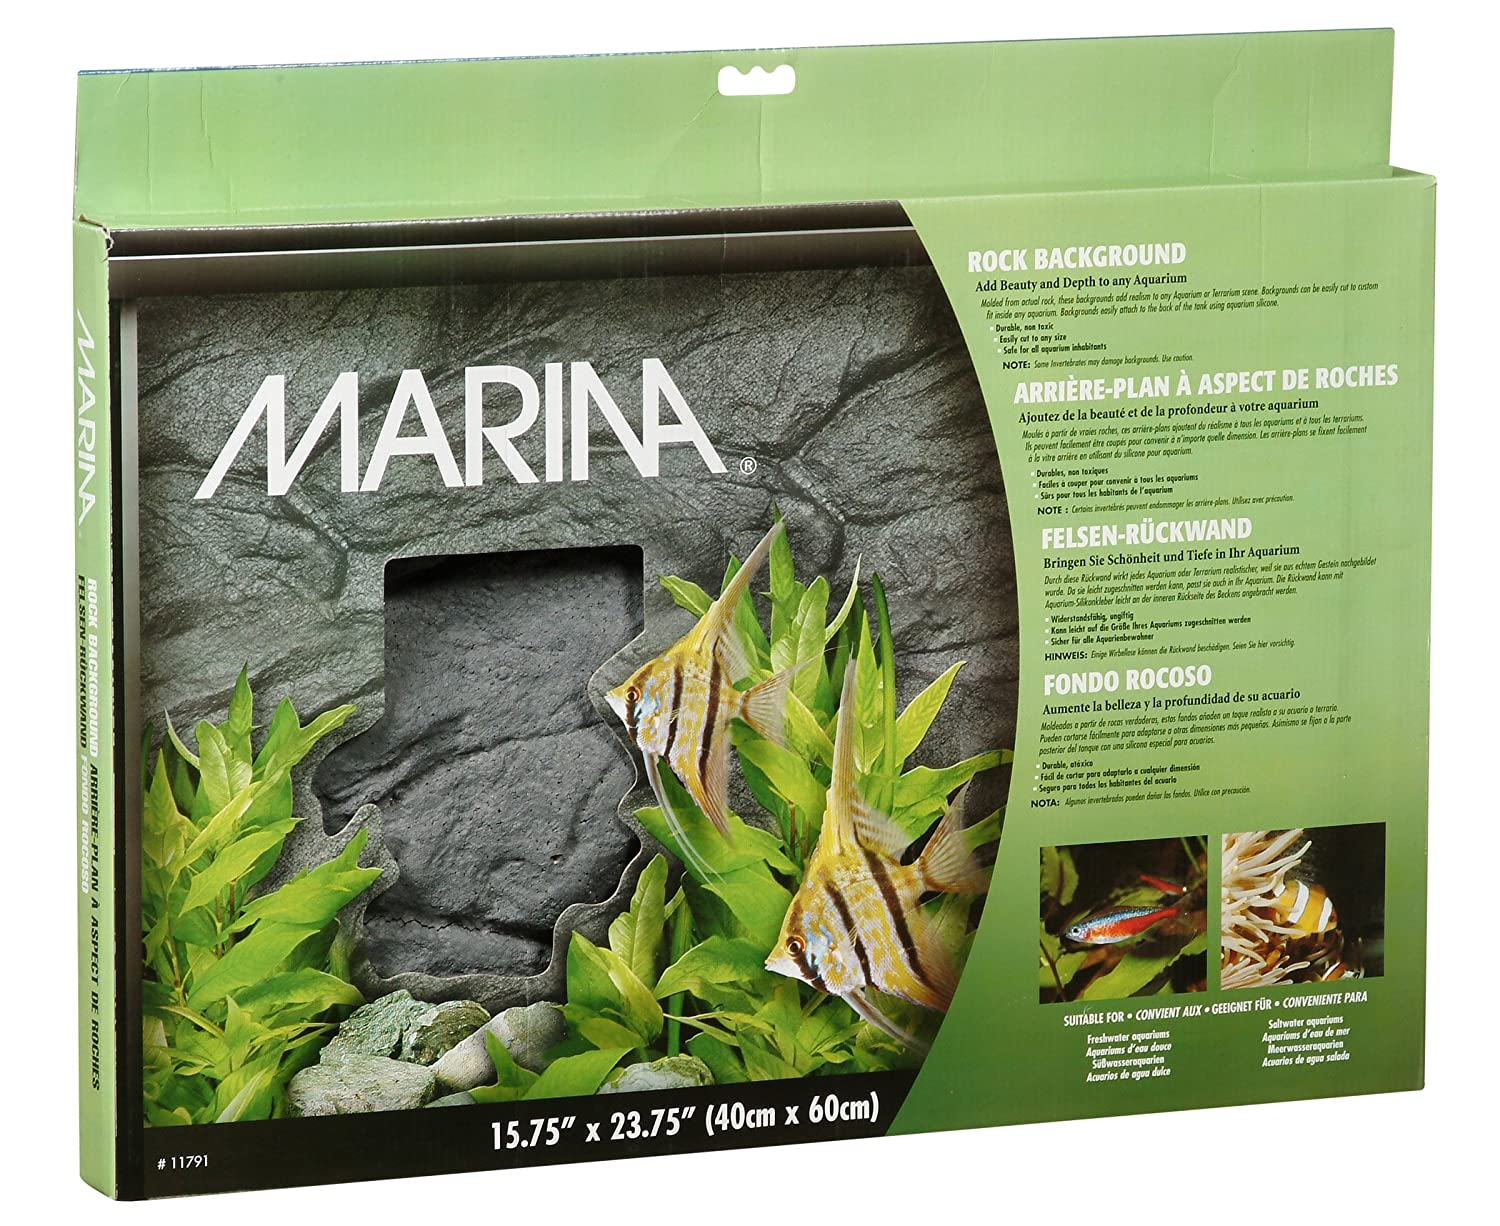 Amazon.com : Marina Styrofoam Background, Rock Design : Aquarium Decor Backgrounds : Pet Supplies